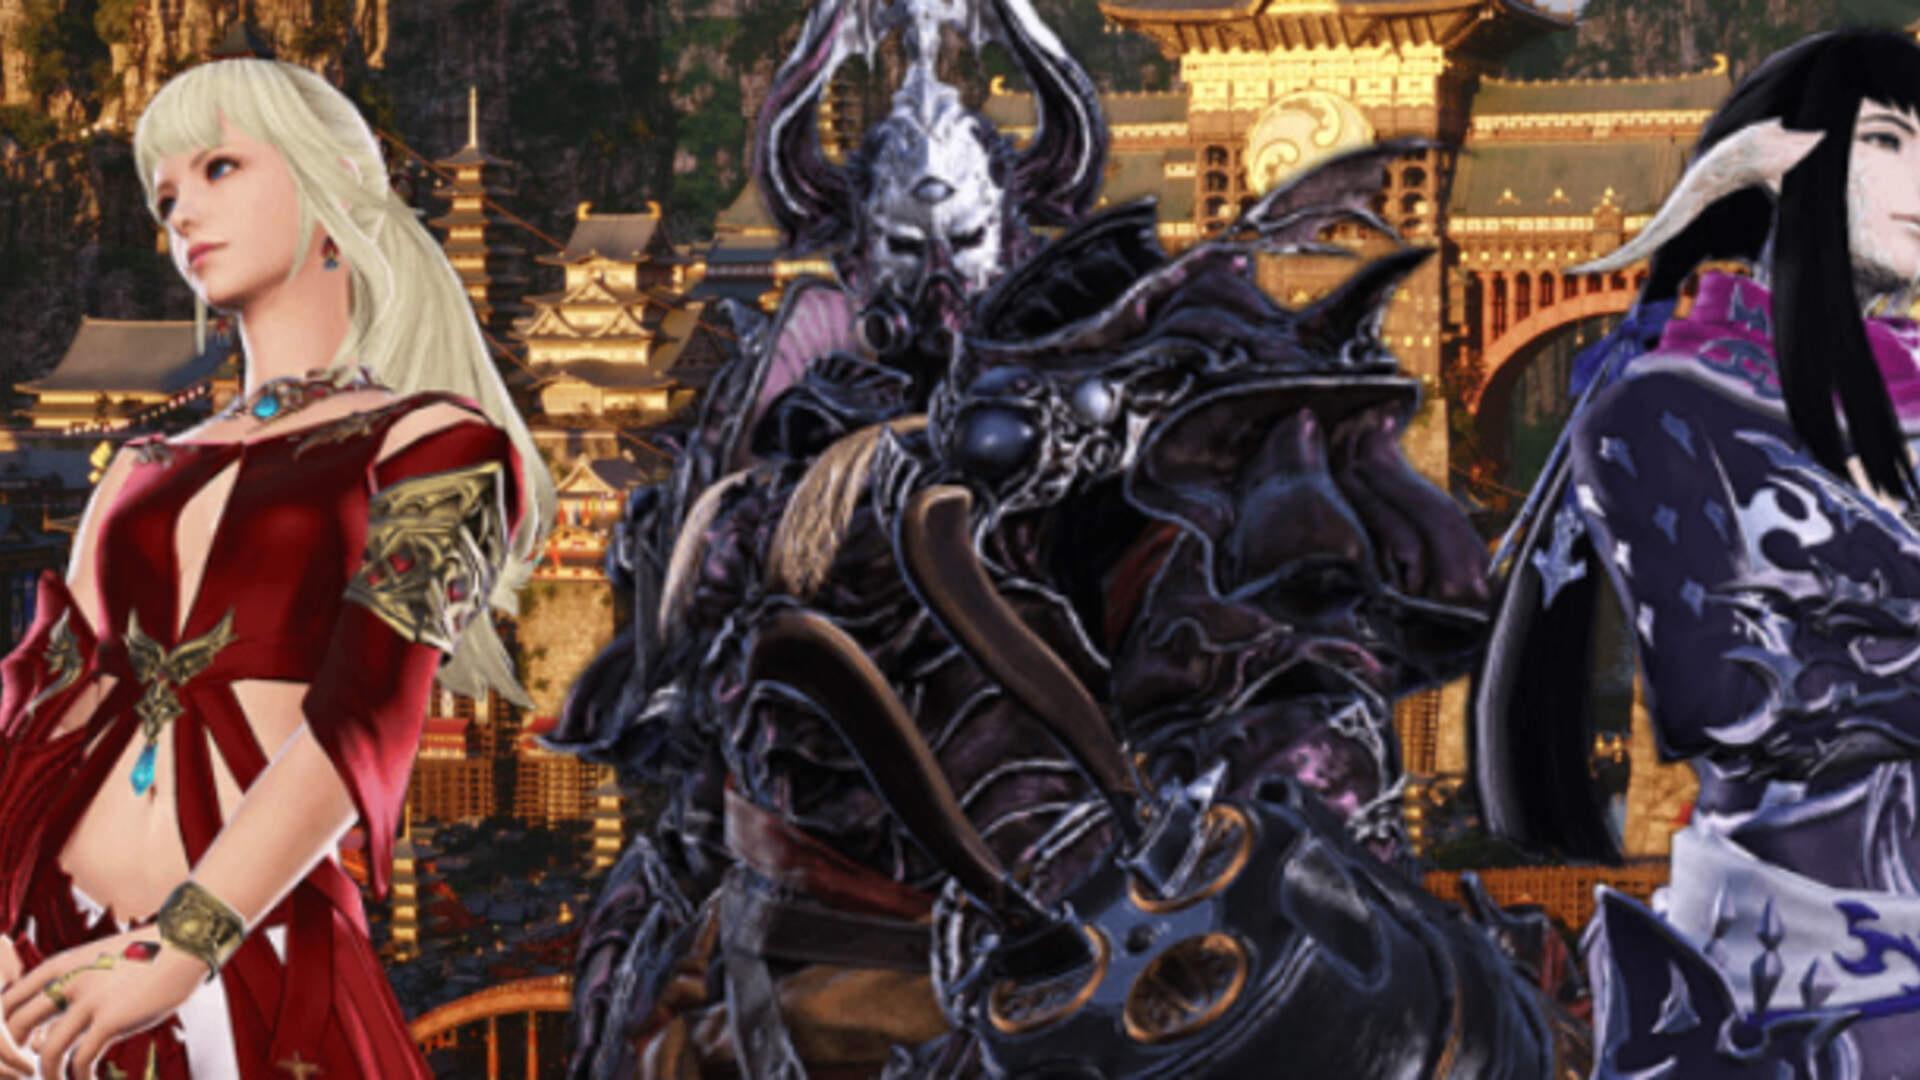 Final Fantasy XIV Stormblood Early Access Issues See Some Players Locked Out of Characters